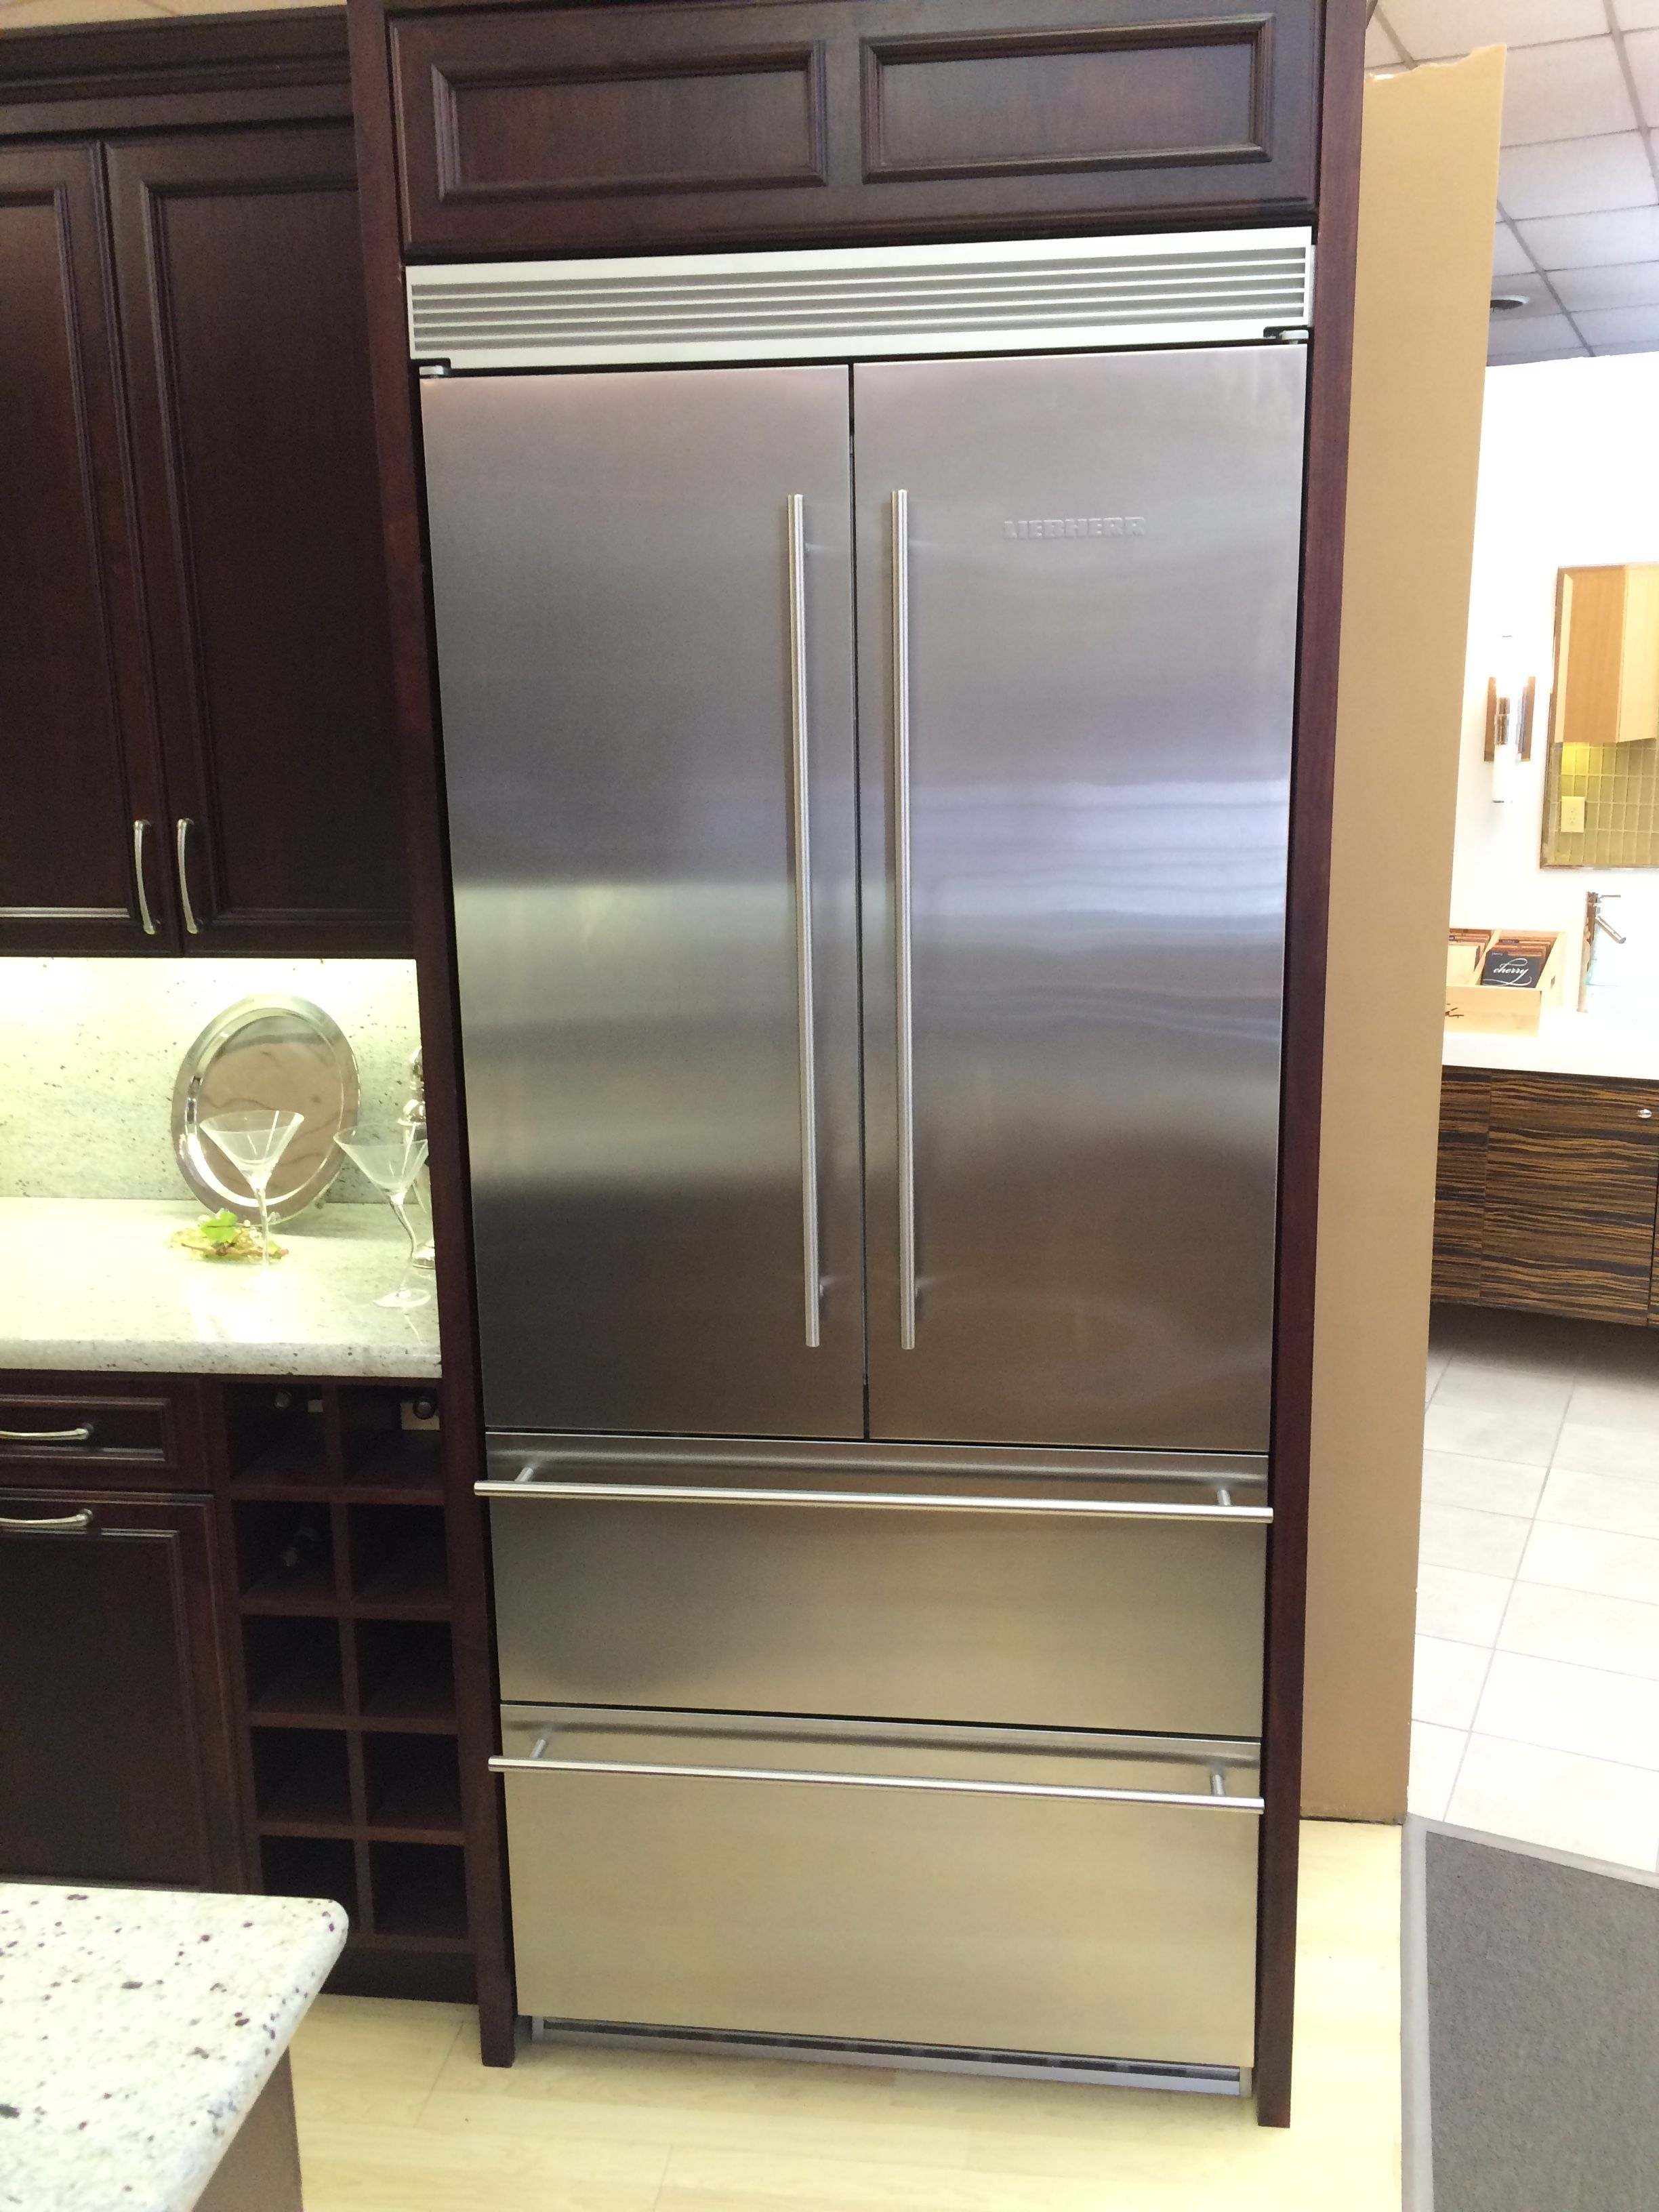 Liebherr French Door With Double Freezer Below Uses Two Separate